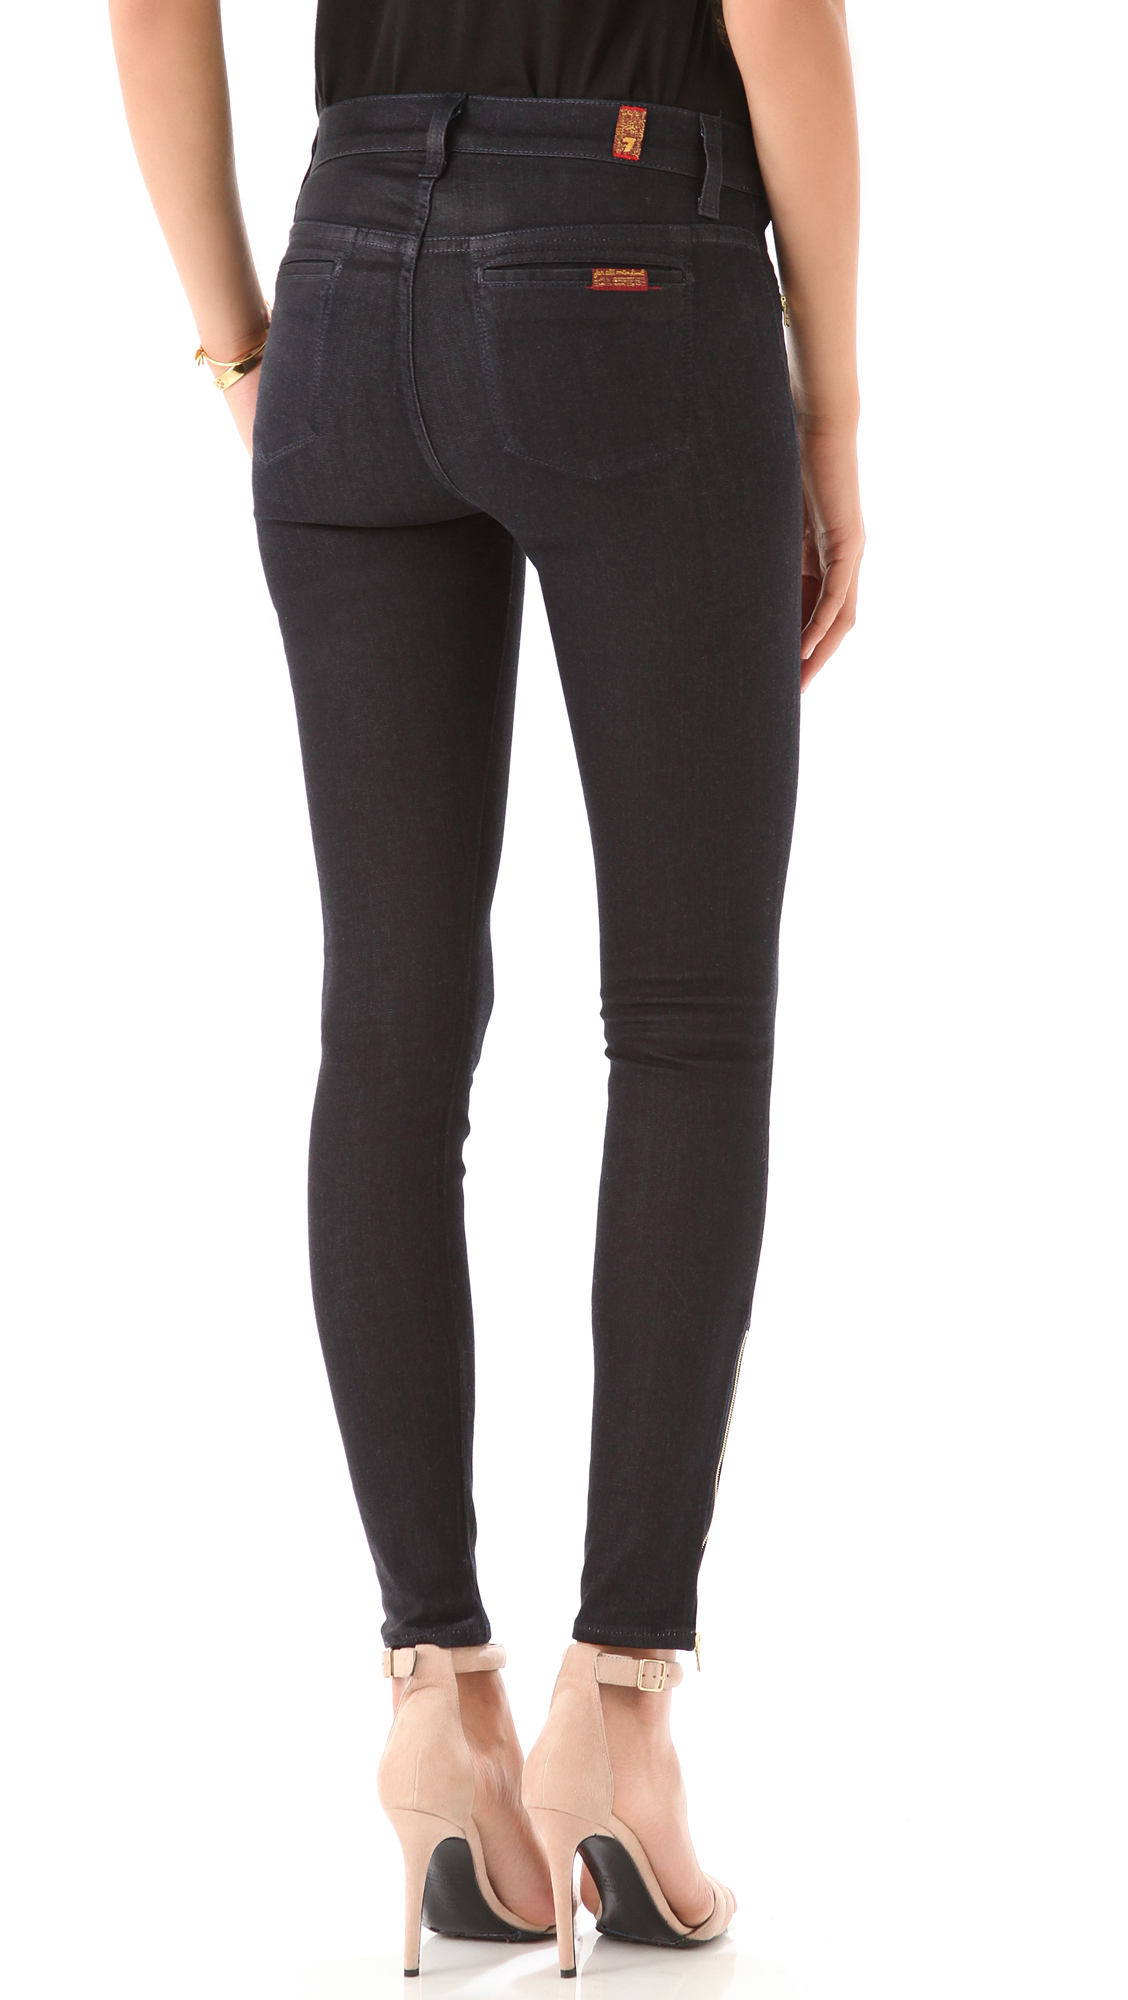 Lyst 7 For All Mankind Skinny Savannah Coated Jeans In Black